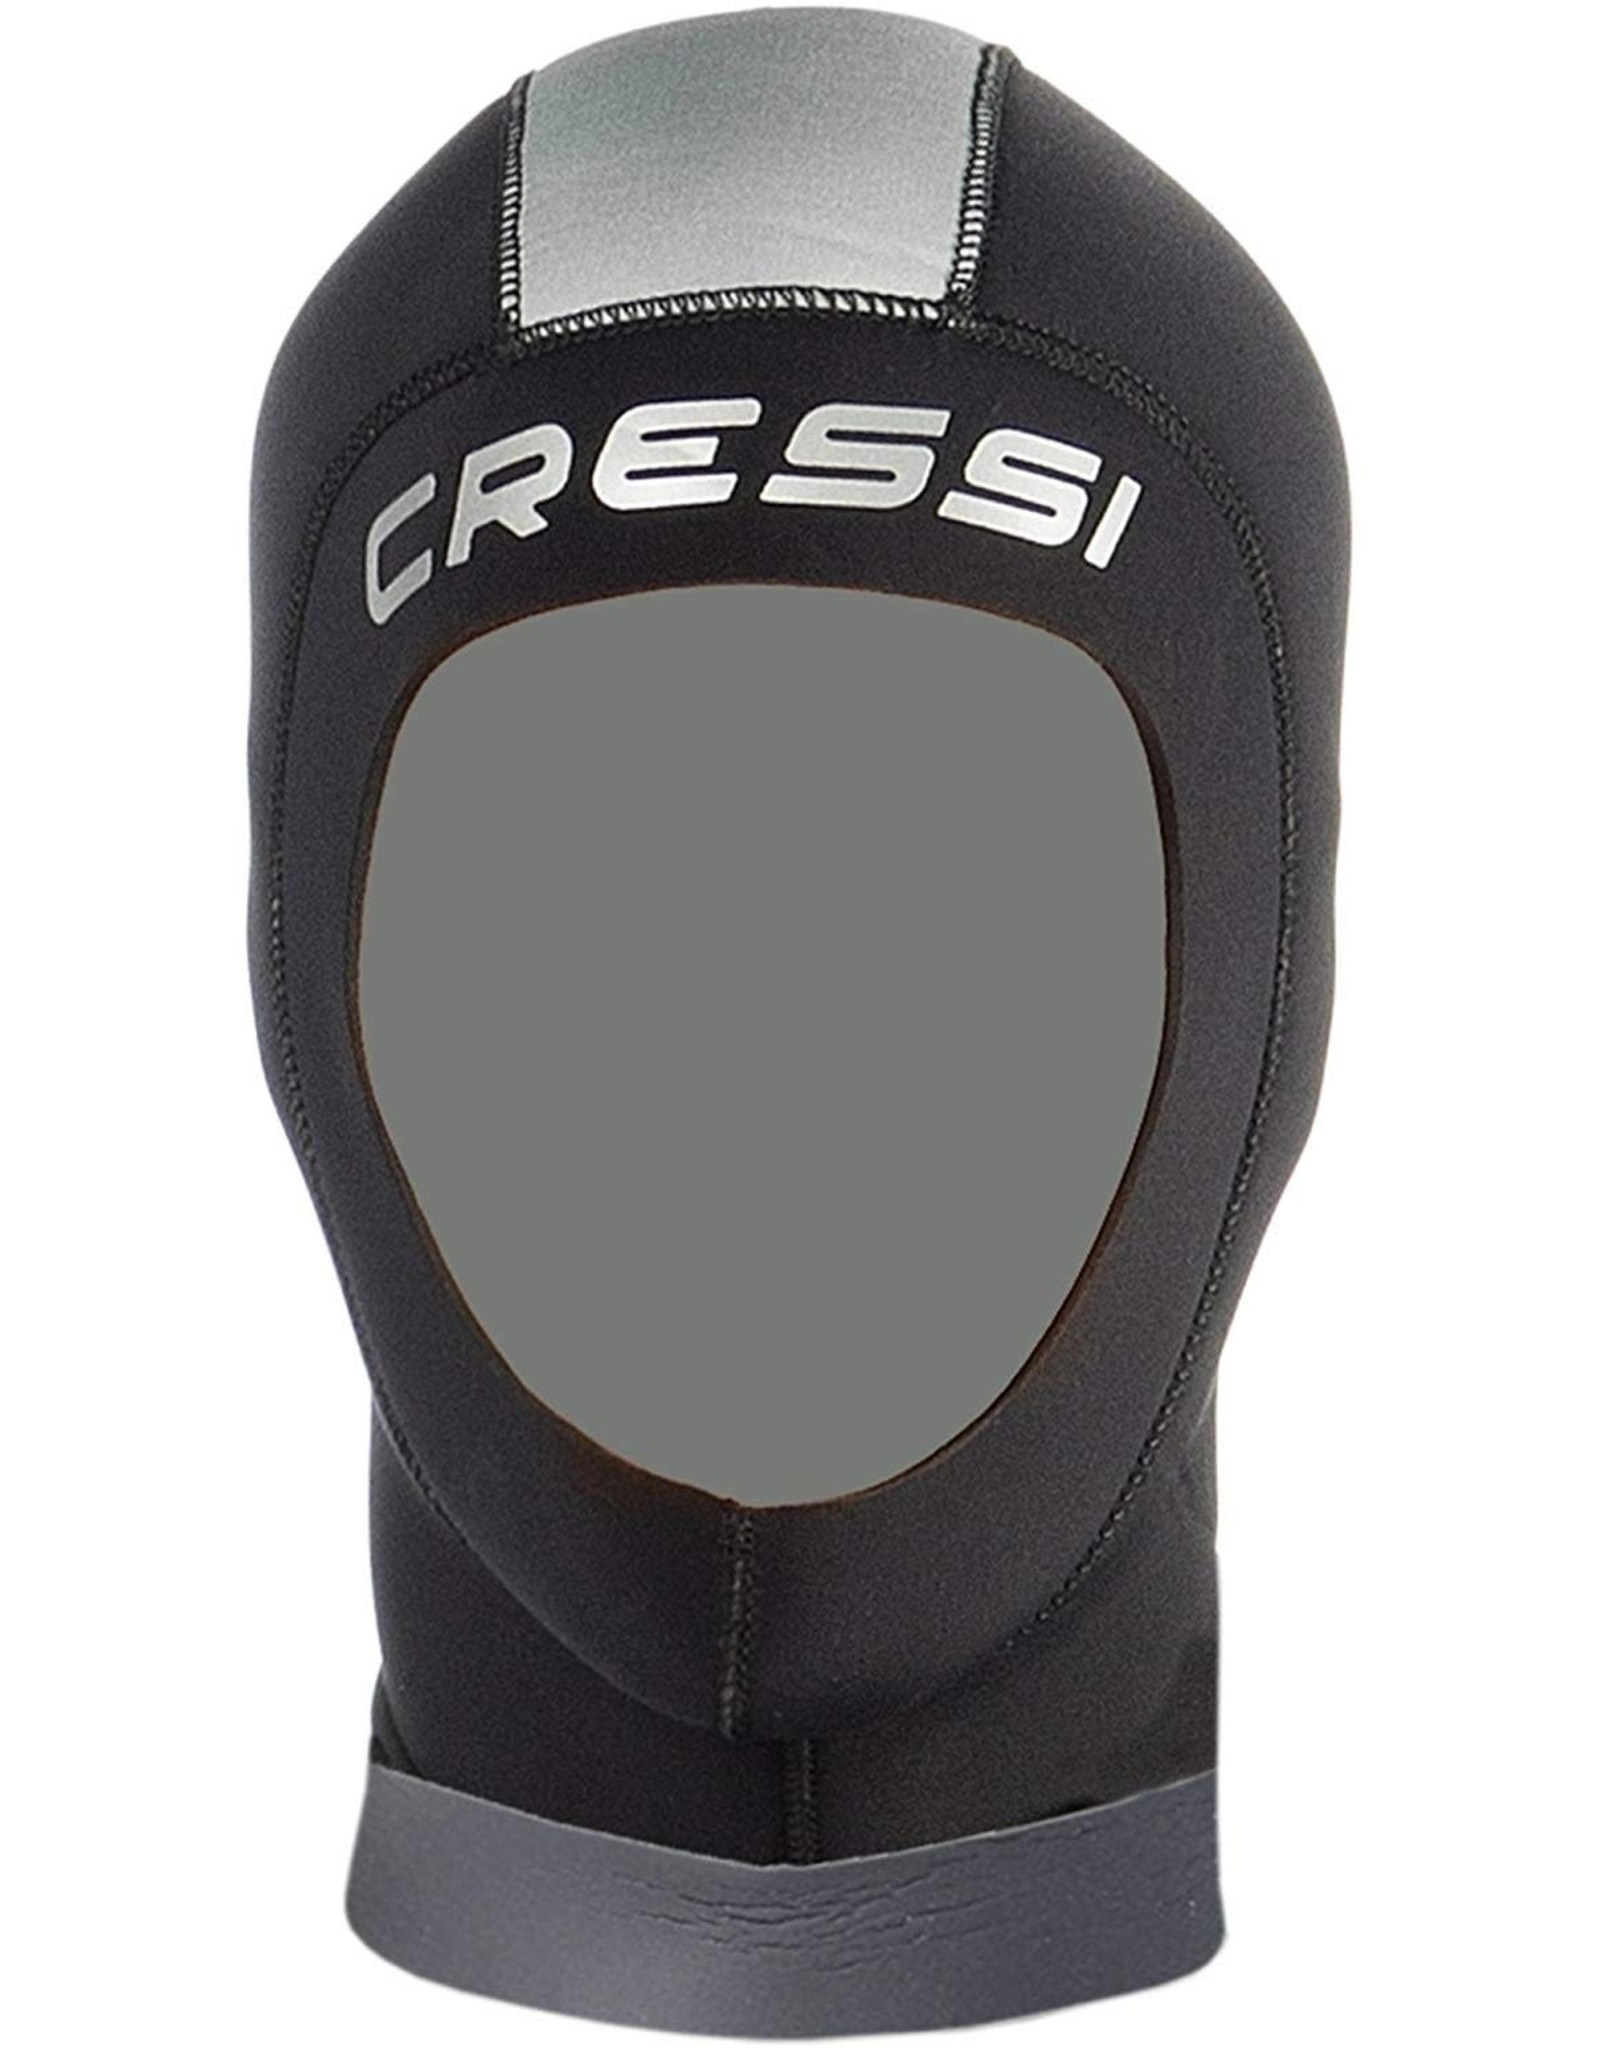 Cressi Cressi Fast All-in-One 3mm - vrouw